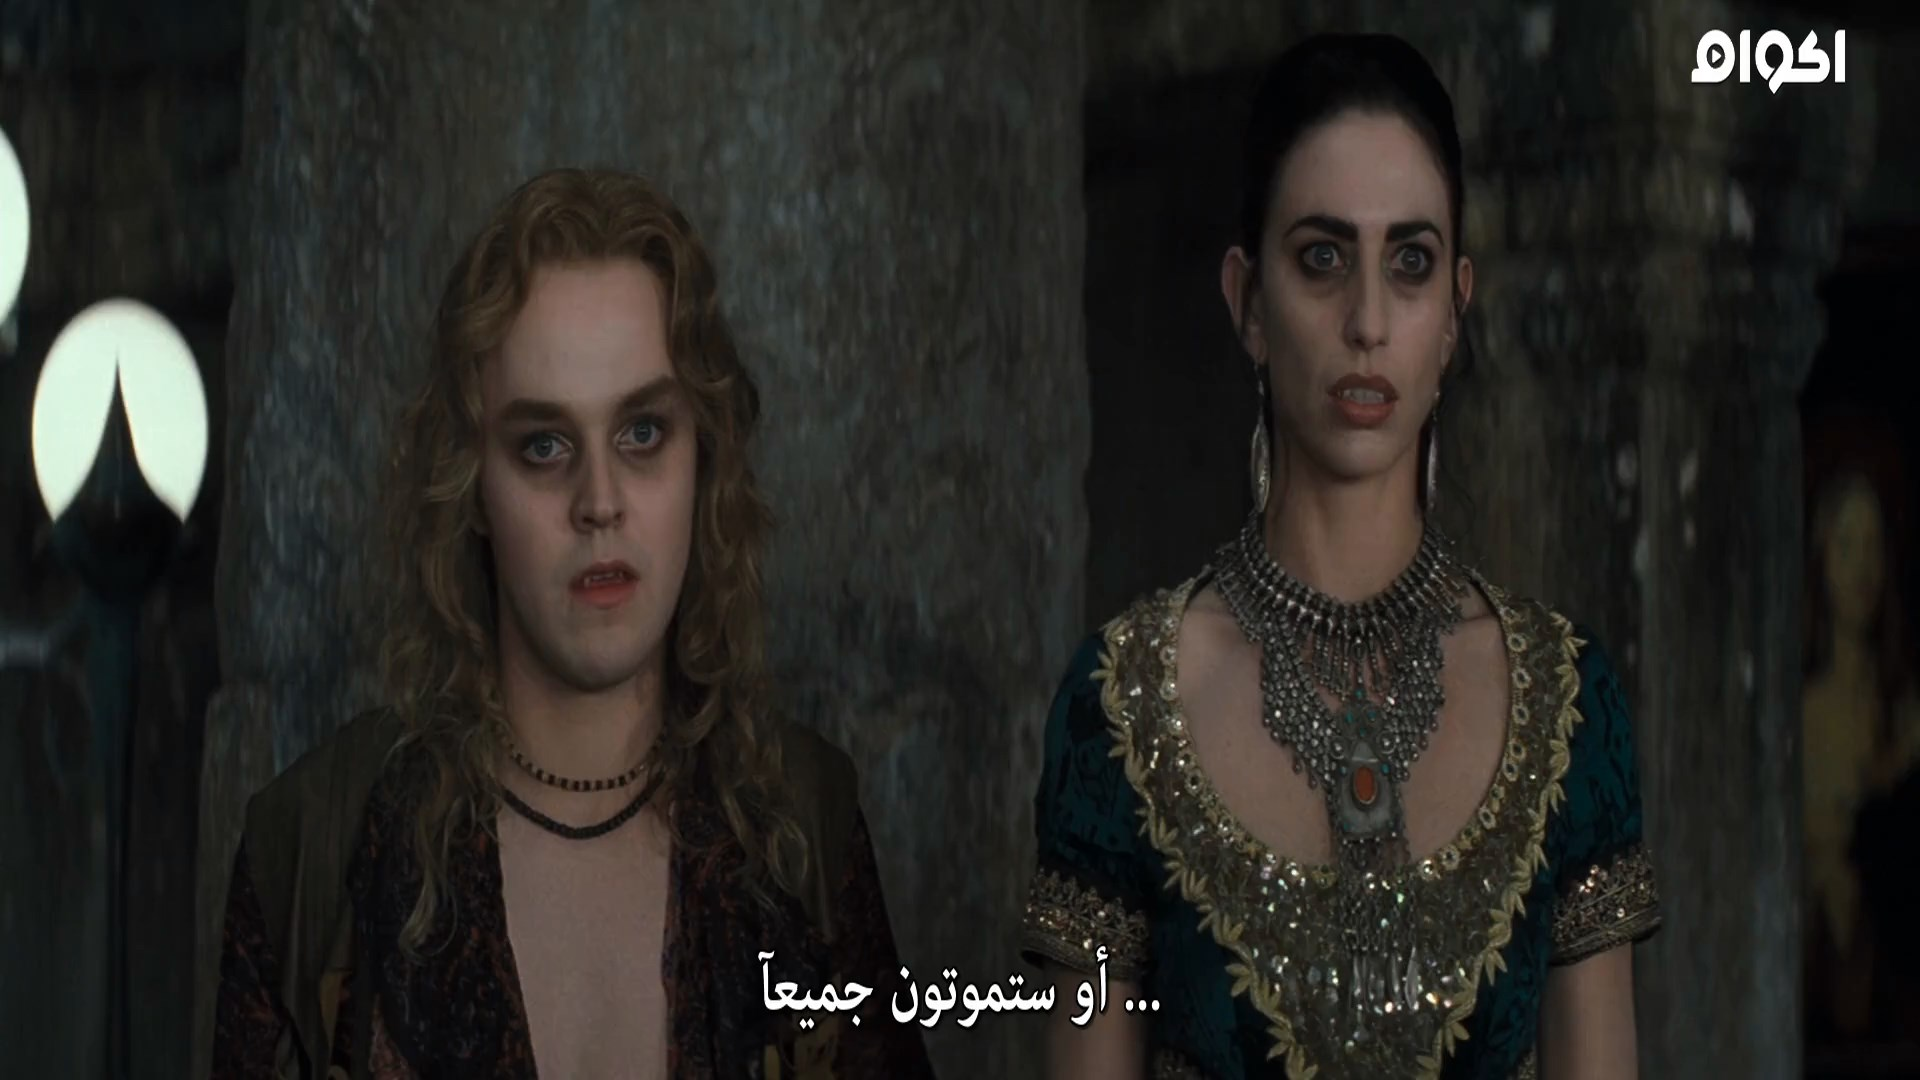 Queen of the Damned,Queen of the Damned 2002